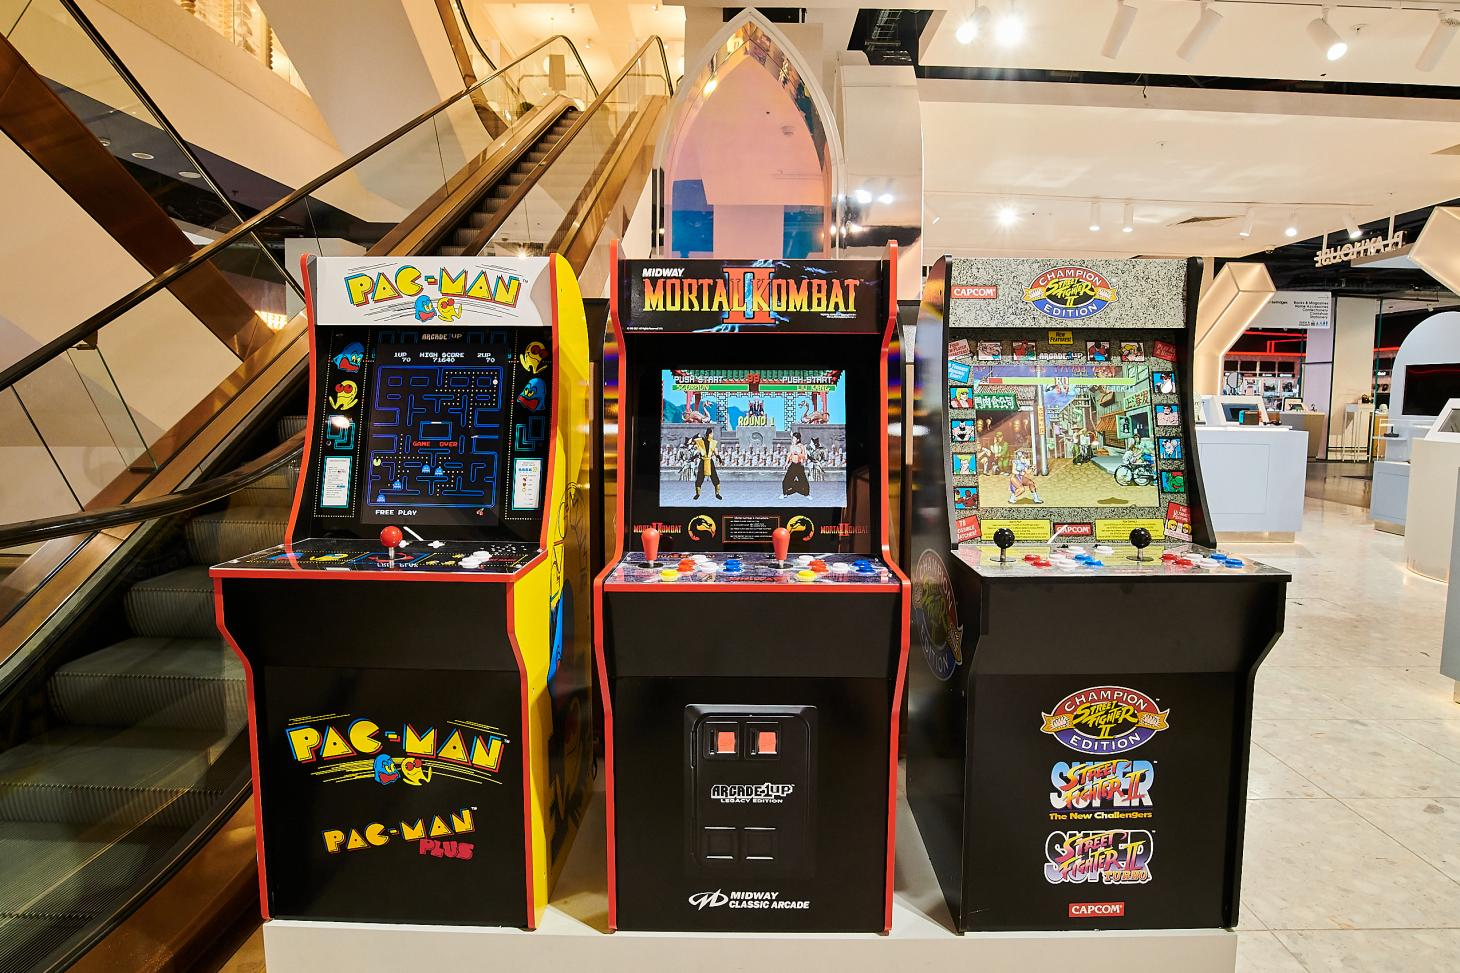 Retro video games at the Playhouse by Smartech space at Selfridges